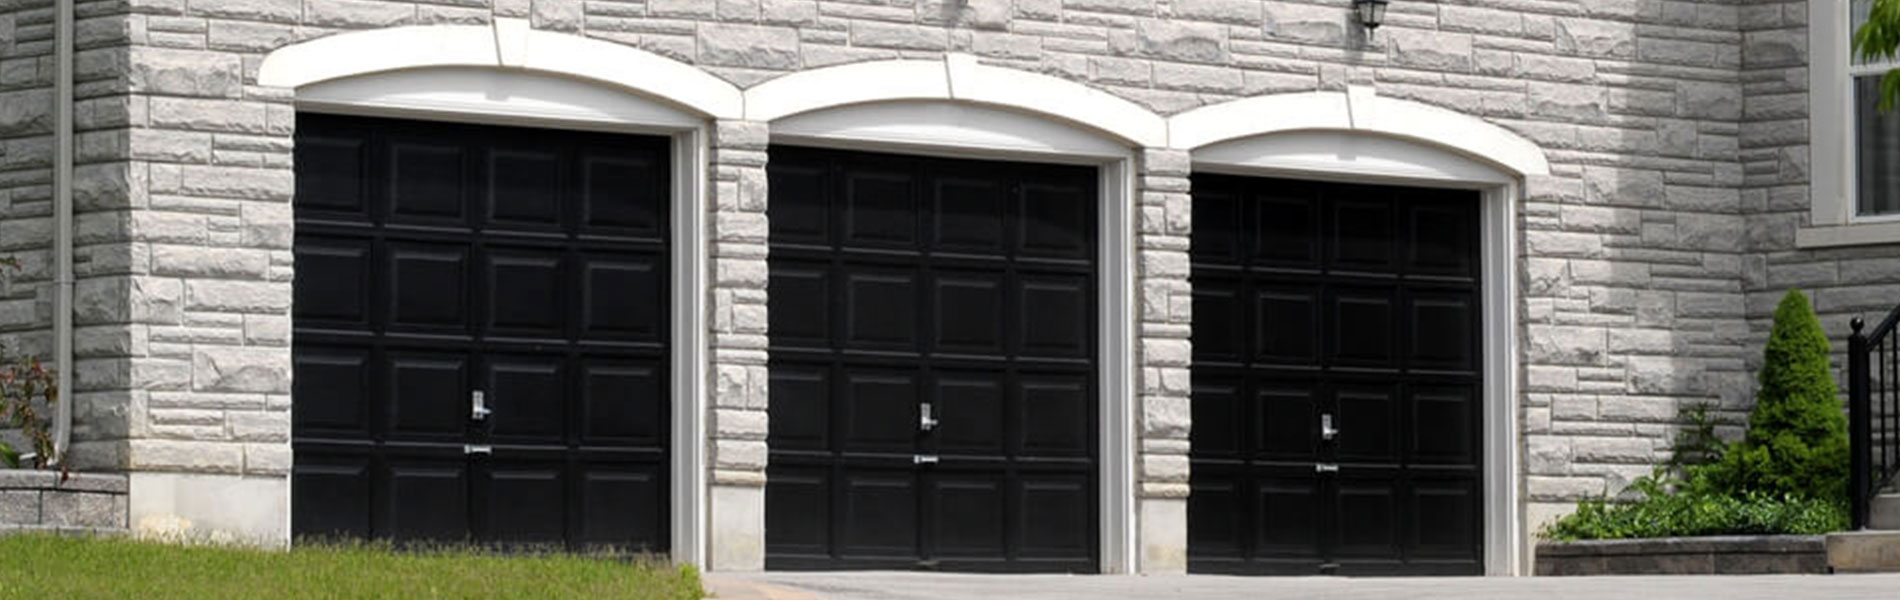 Neighborhood Garage Door Repair Service, Hugo, MN 651-319-5066